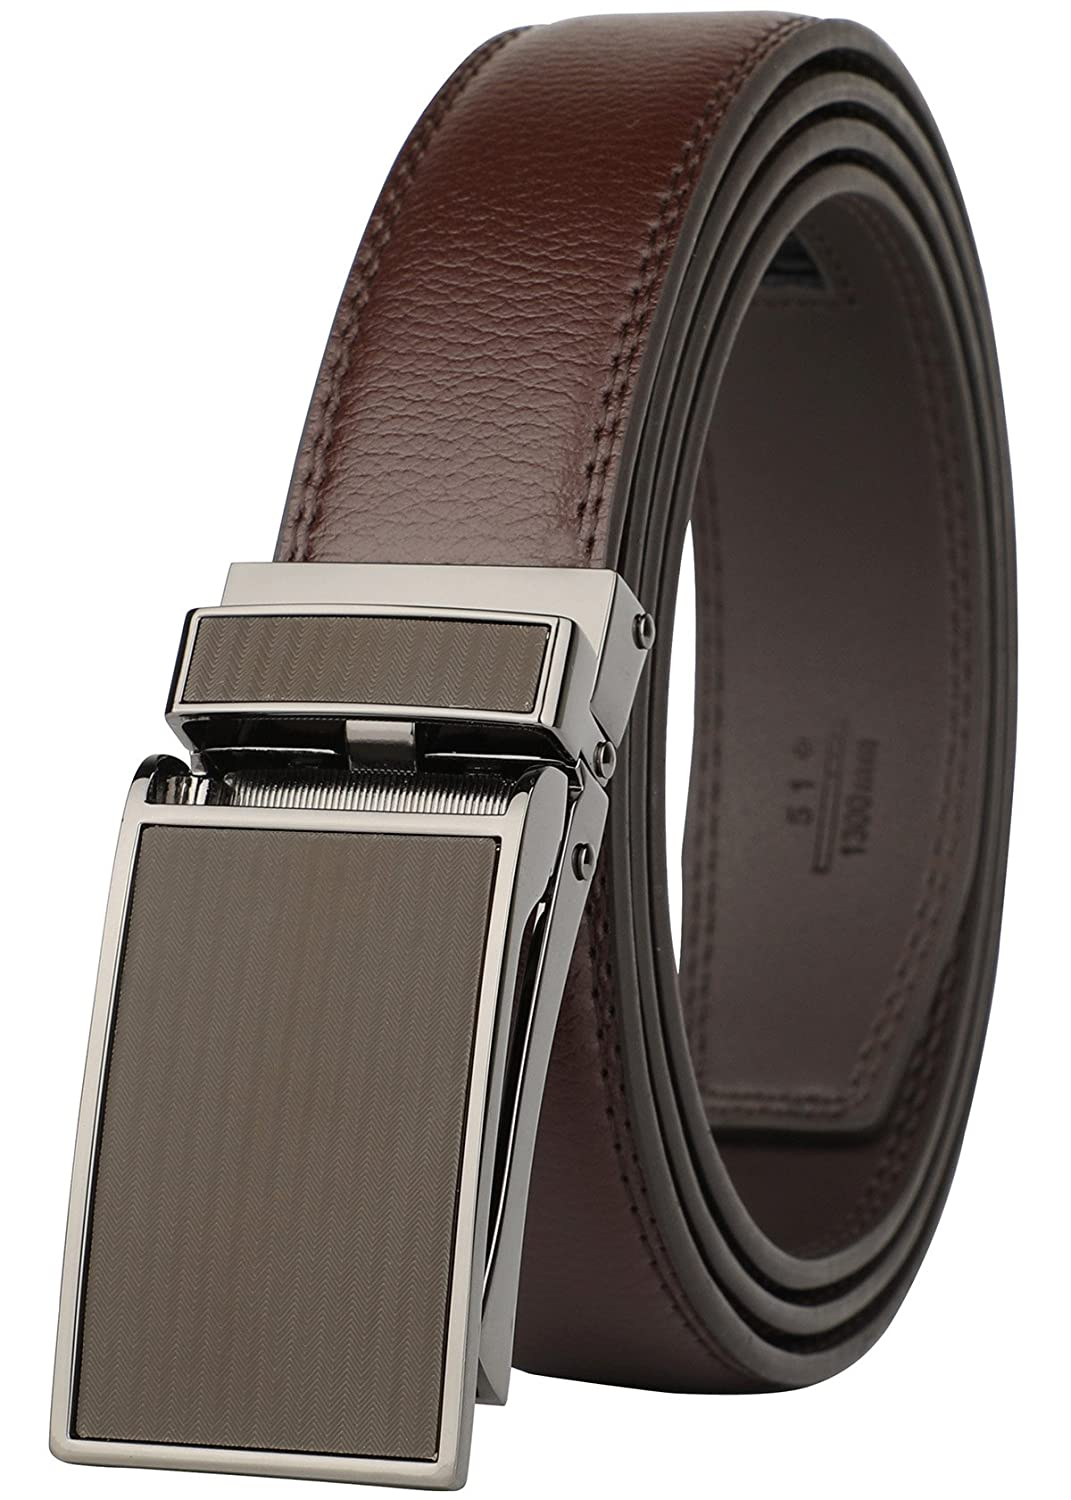 Belt for Men, Genuine Leather Ratchet Dress Comfort Belt with Slide Click Buckle, Trim to Fit